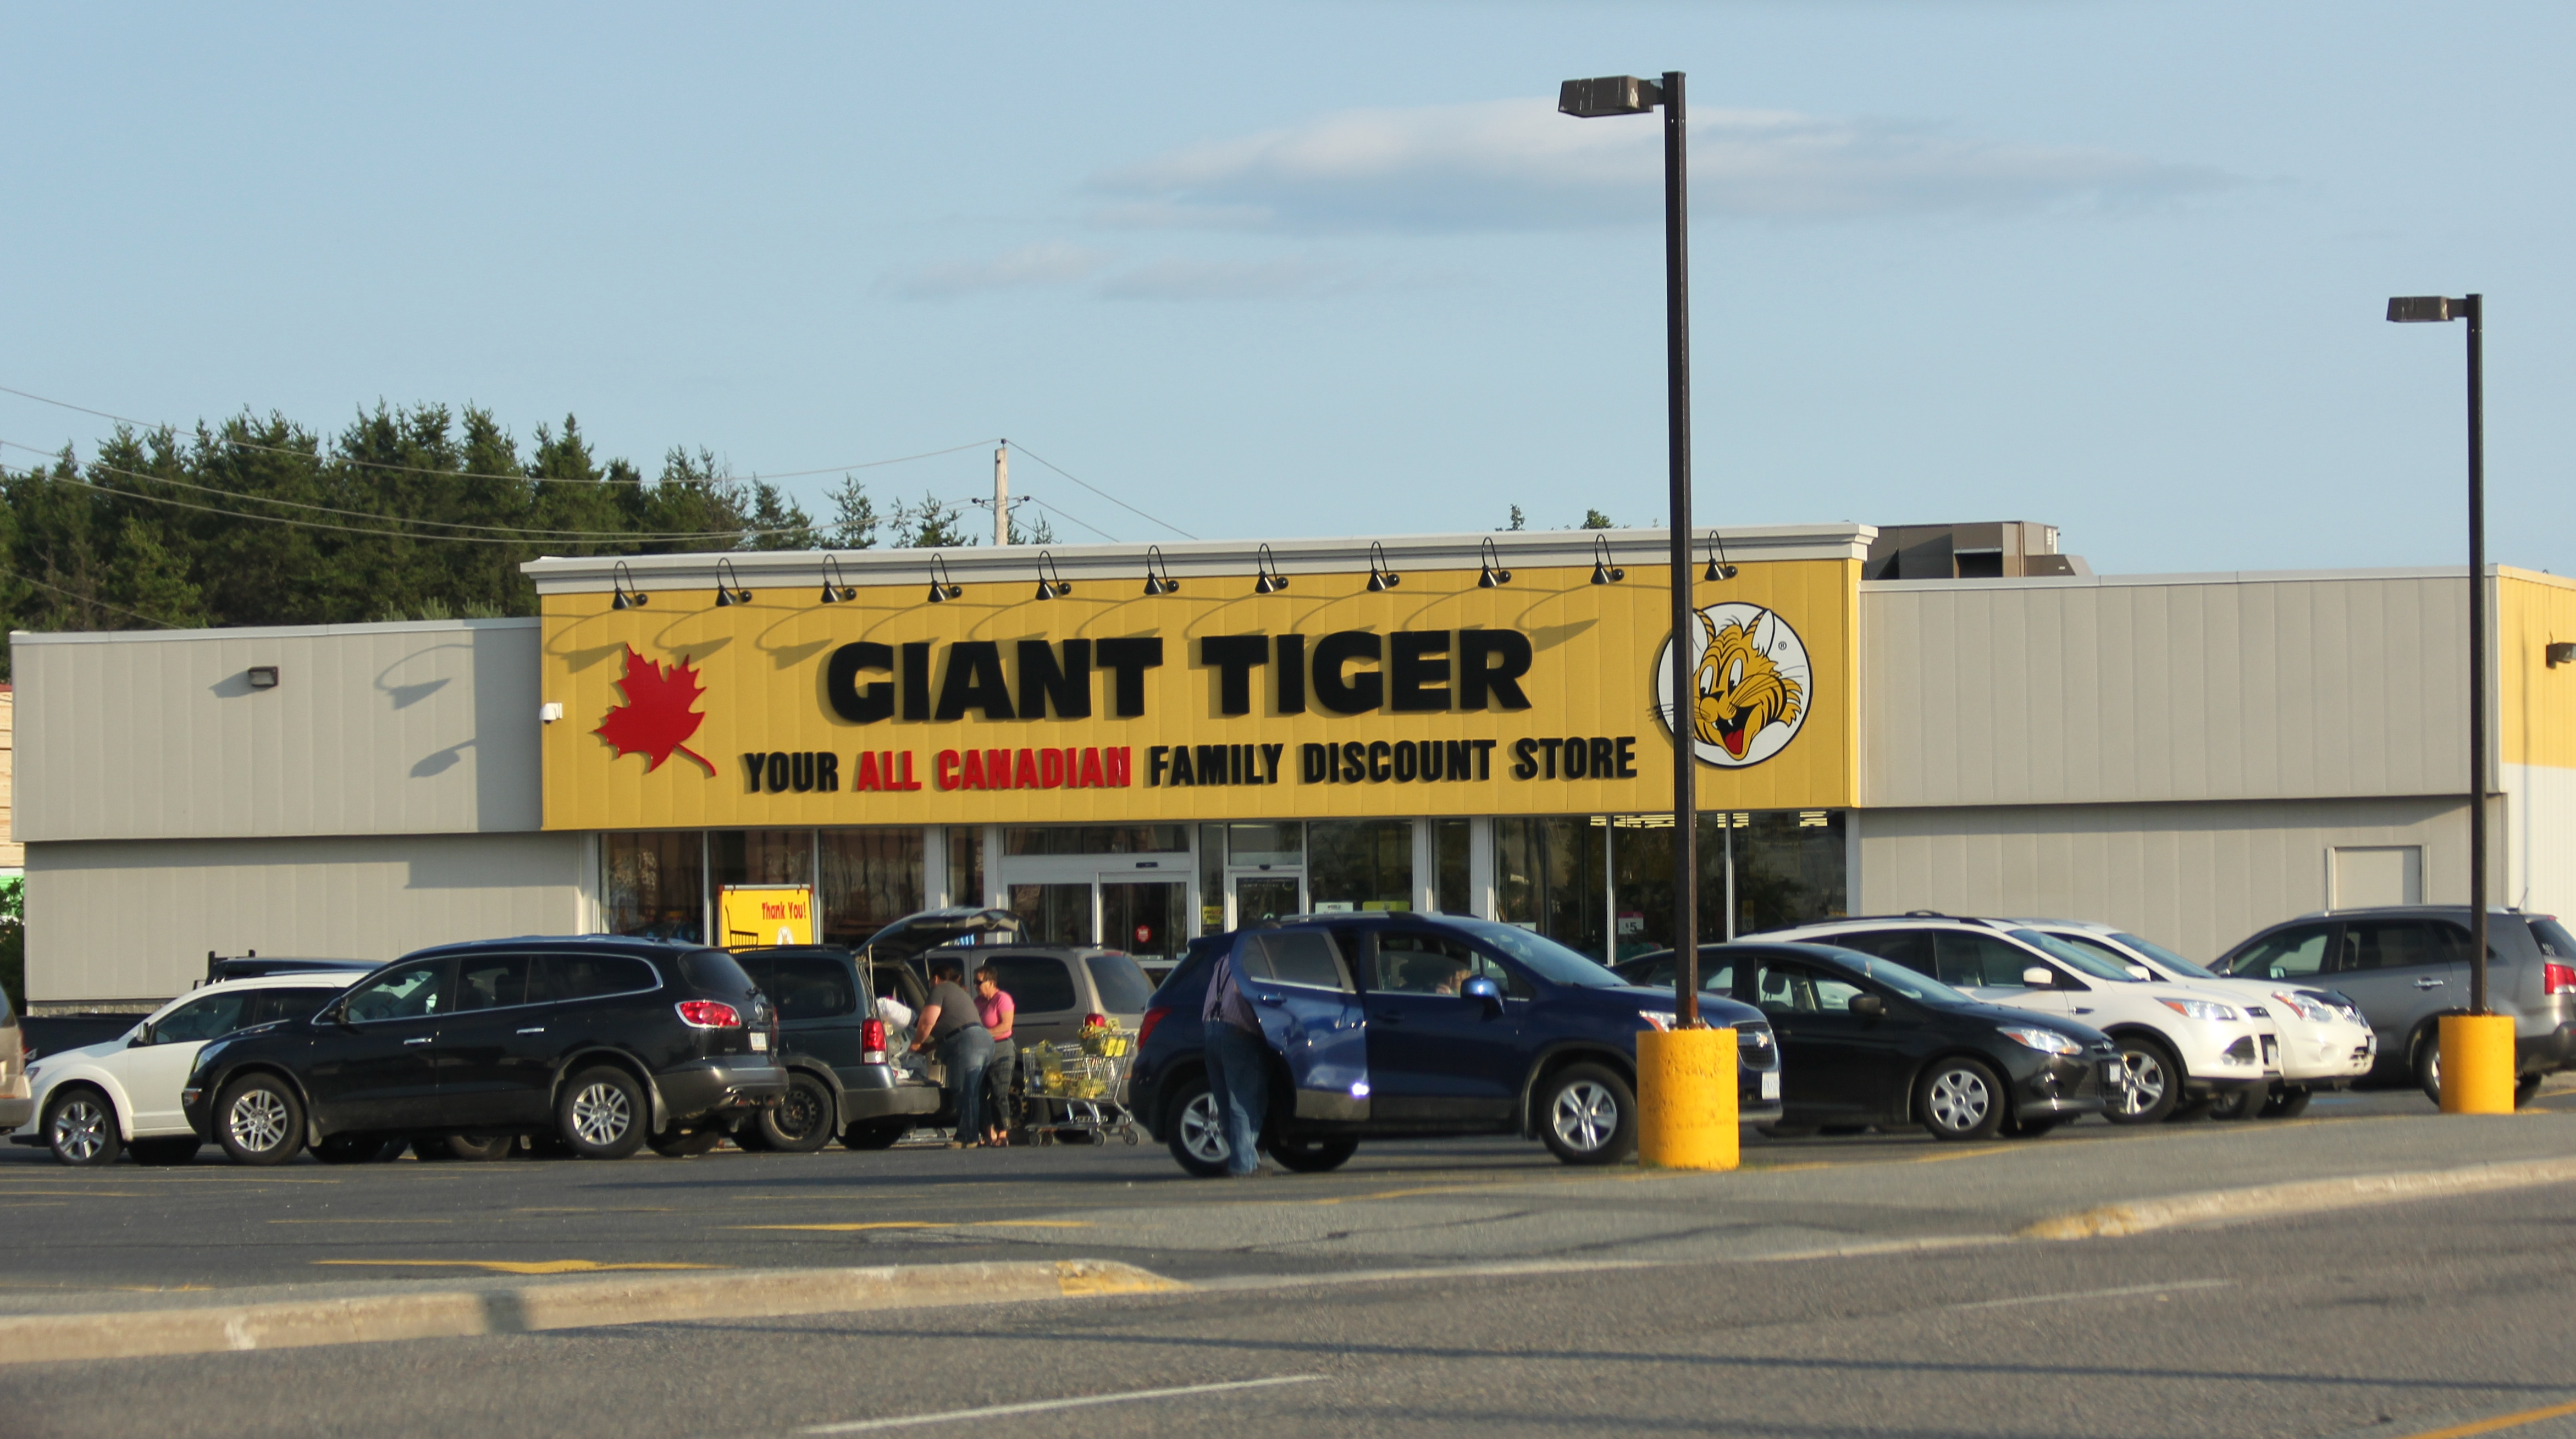 Giant Tiger - Wikipedia